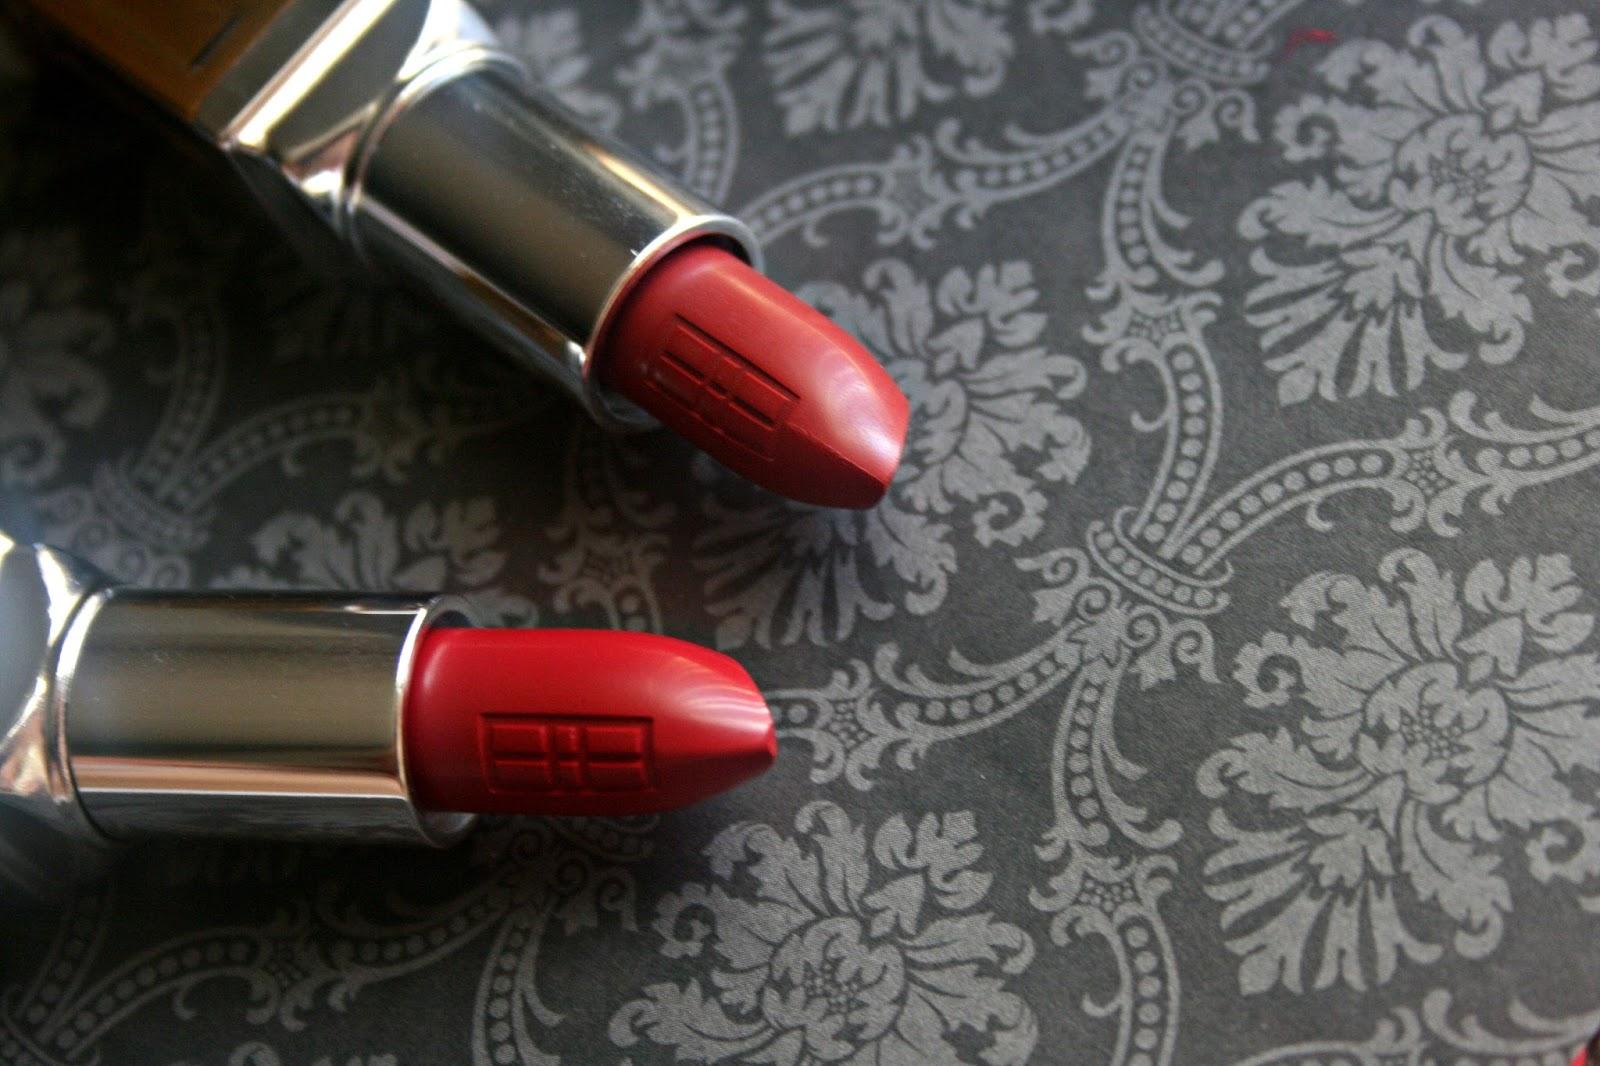 ELizabeth Arden Beautiful Color Moisturizing Lipstick in Sangria and Red To Wear Review, Photos & Swatches